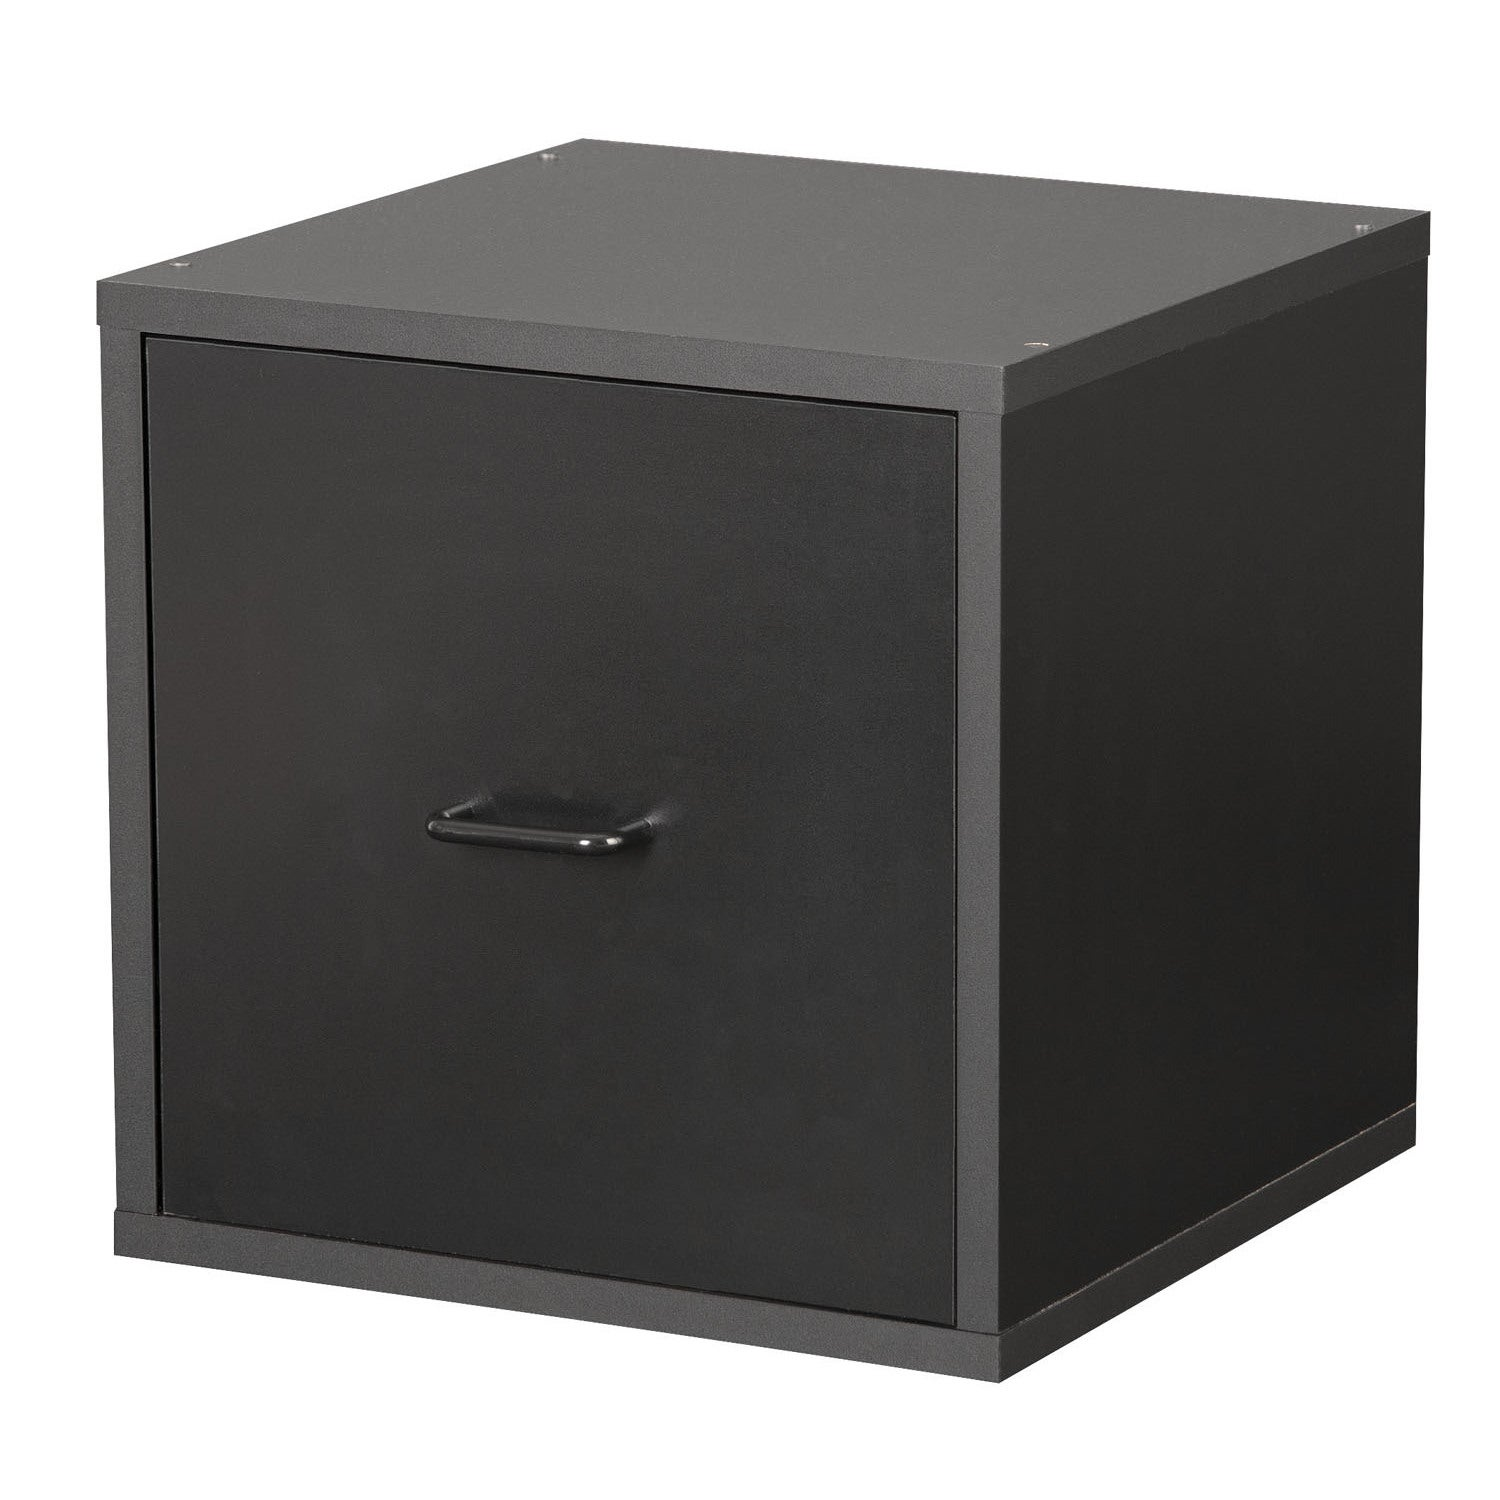 Foremost Groups File Cube (Black)